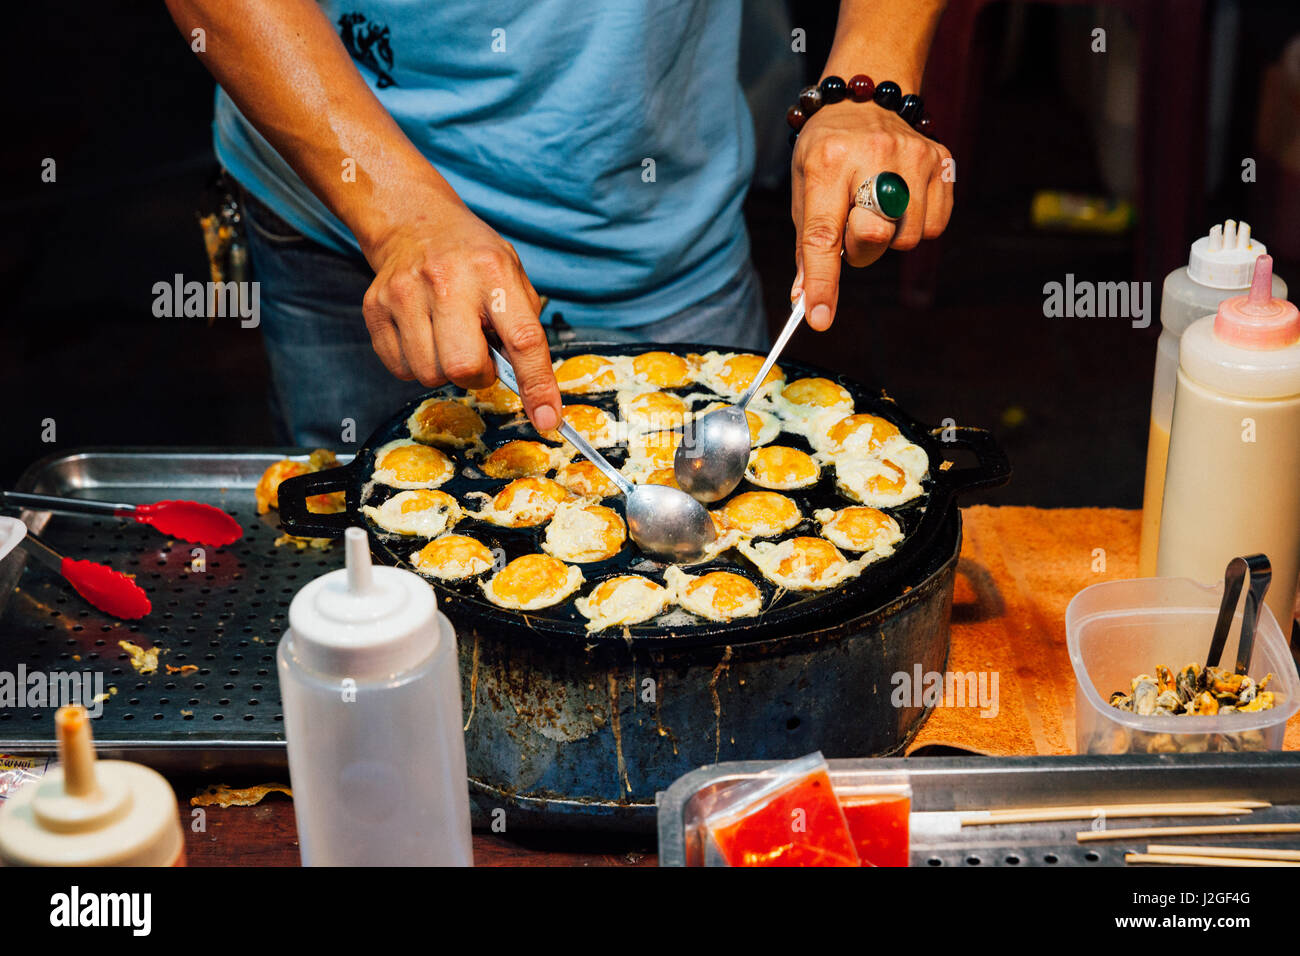 CHIANG MAI, THAILAND - AUGUST 21: Food vendor cook quail eggs at the Sunday Market (Walking Street) on August 21, - Stock Image